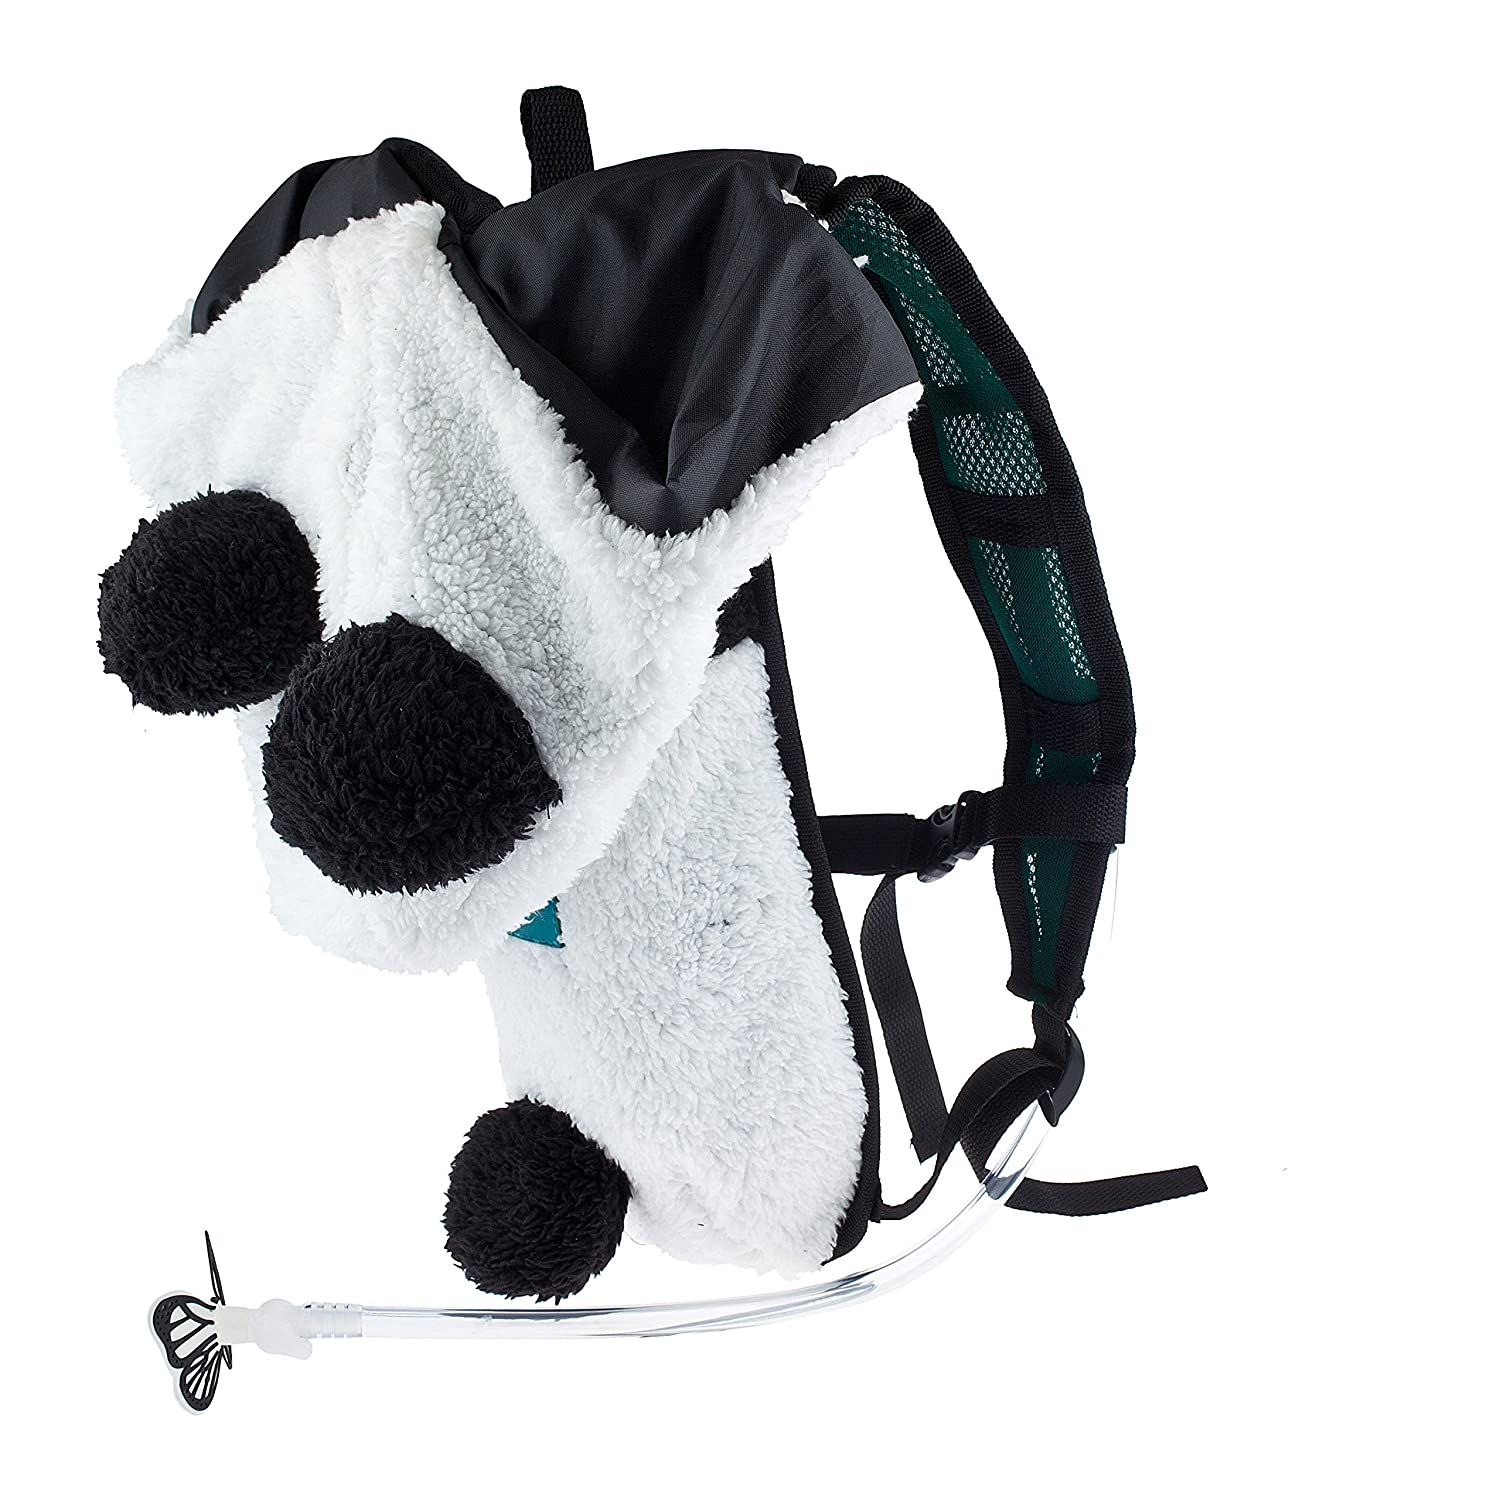 Dan-Pak Hydration Pack 2l – Party Panda – Black and White Plush Furry Hood rave backpack